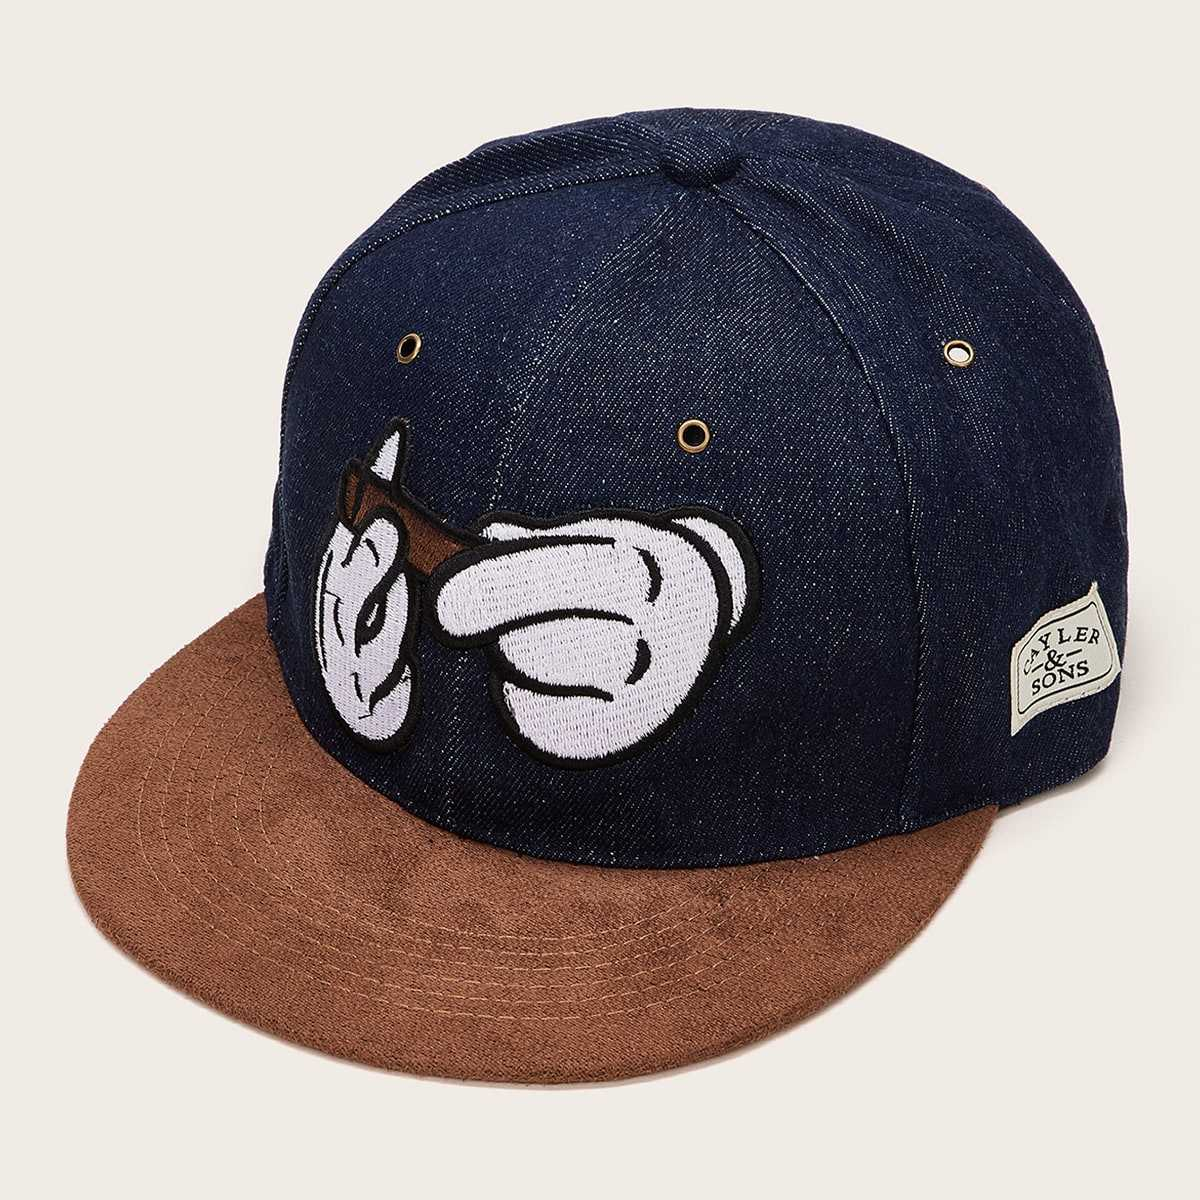 Guys Hand Embroidery Baseball Cap in Black by ROMWE on GOOFASH